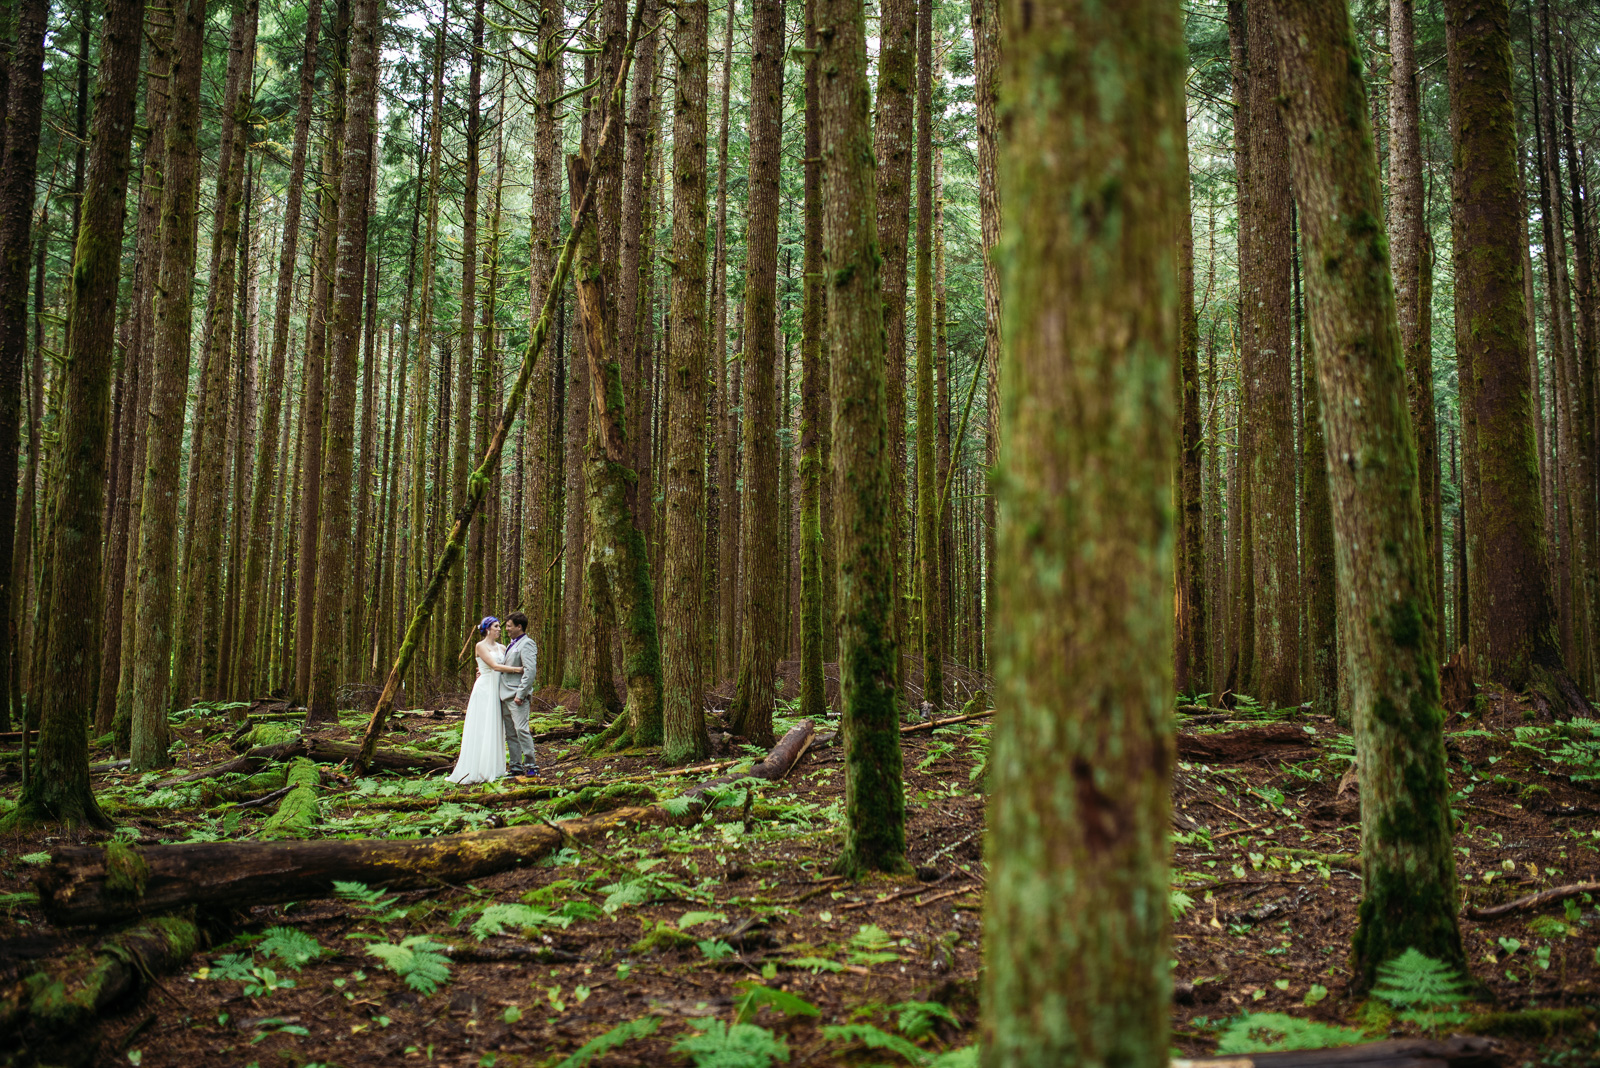 bc-wedding-photographers-kitimat-minette-bay-lodge-wedding-21.jpg